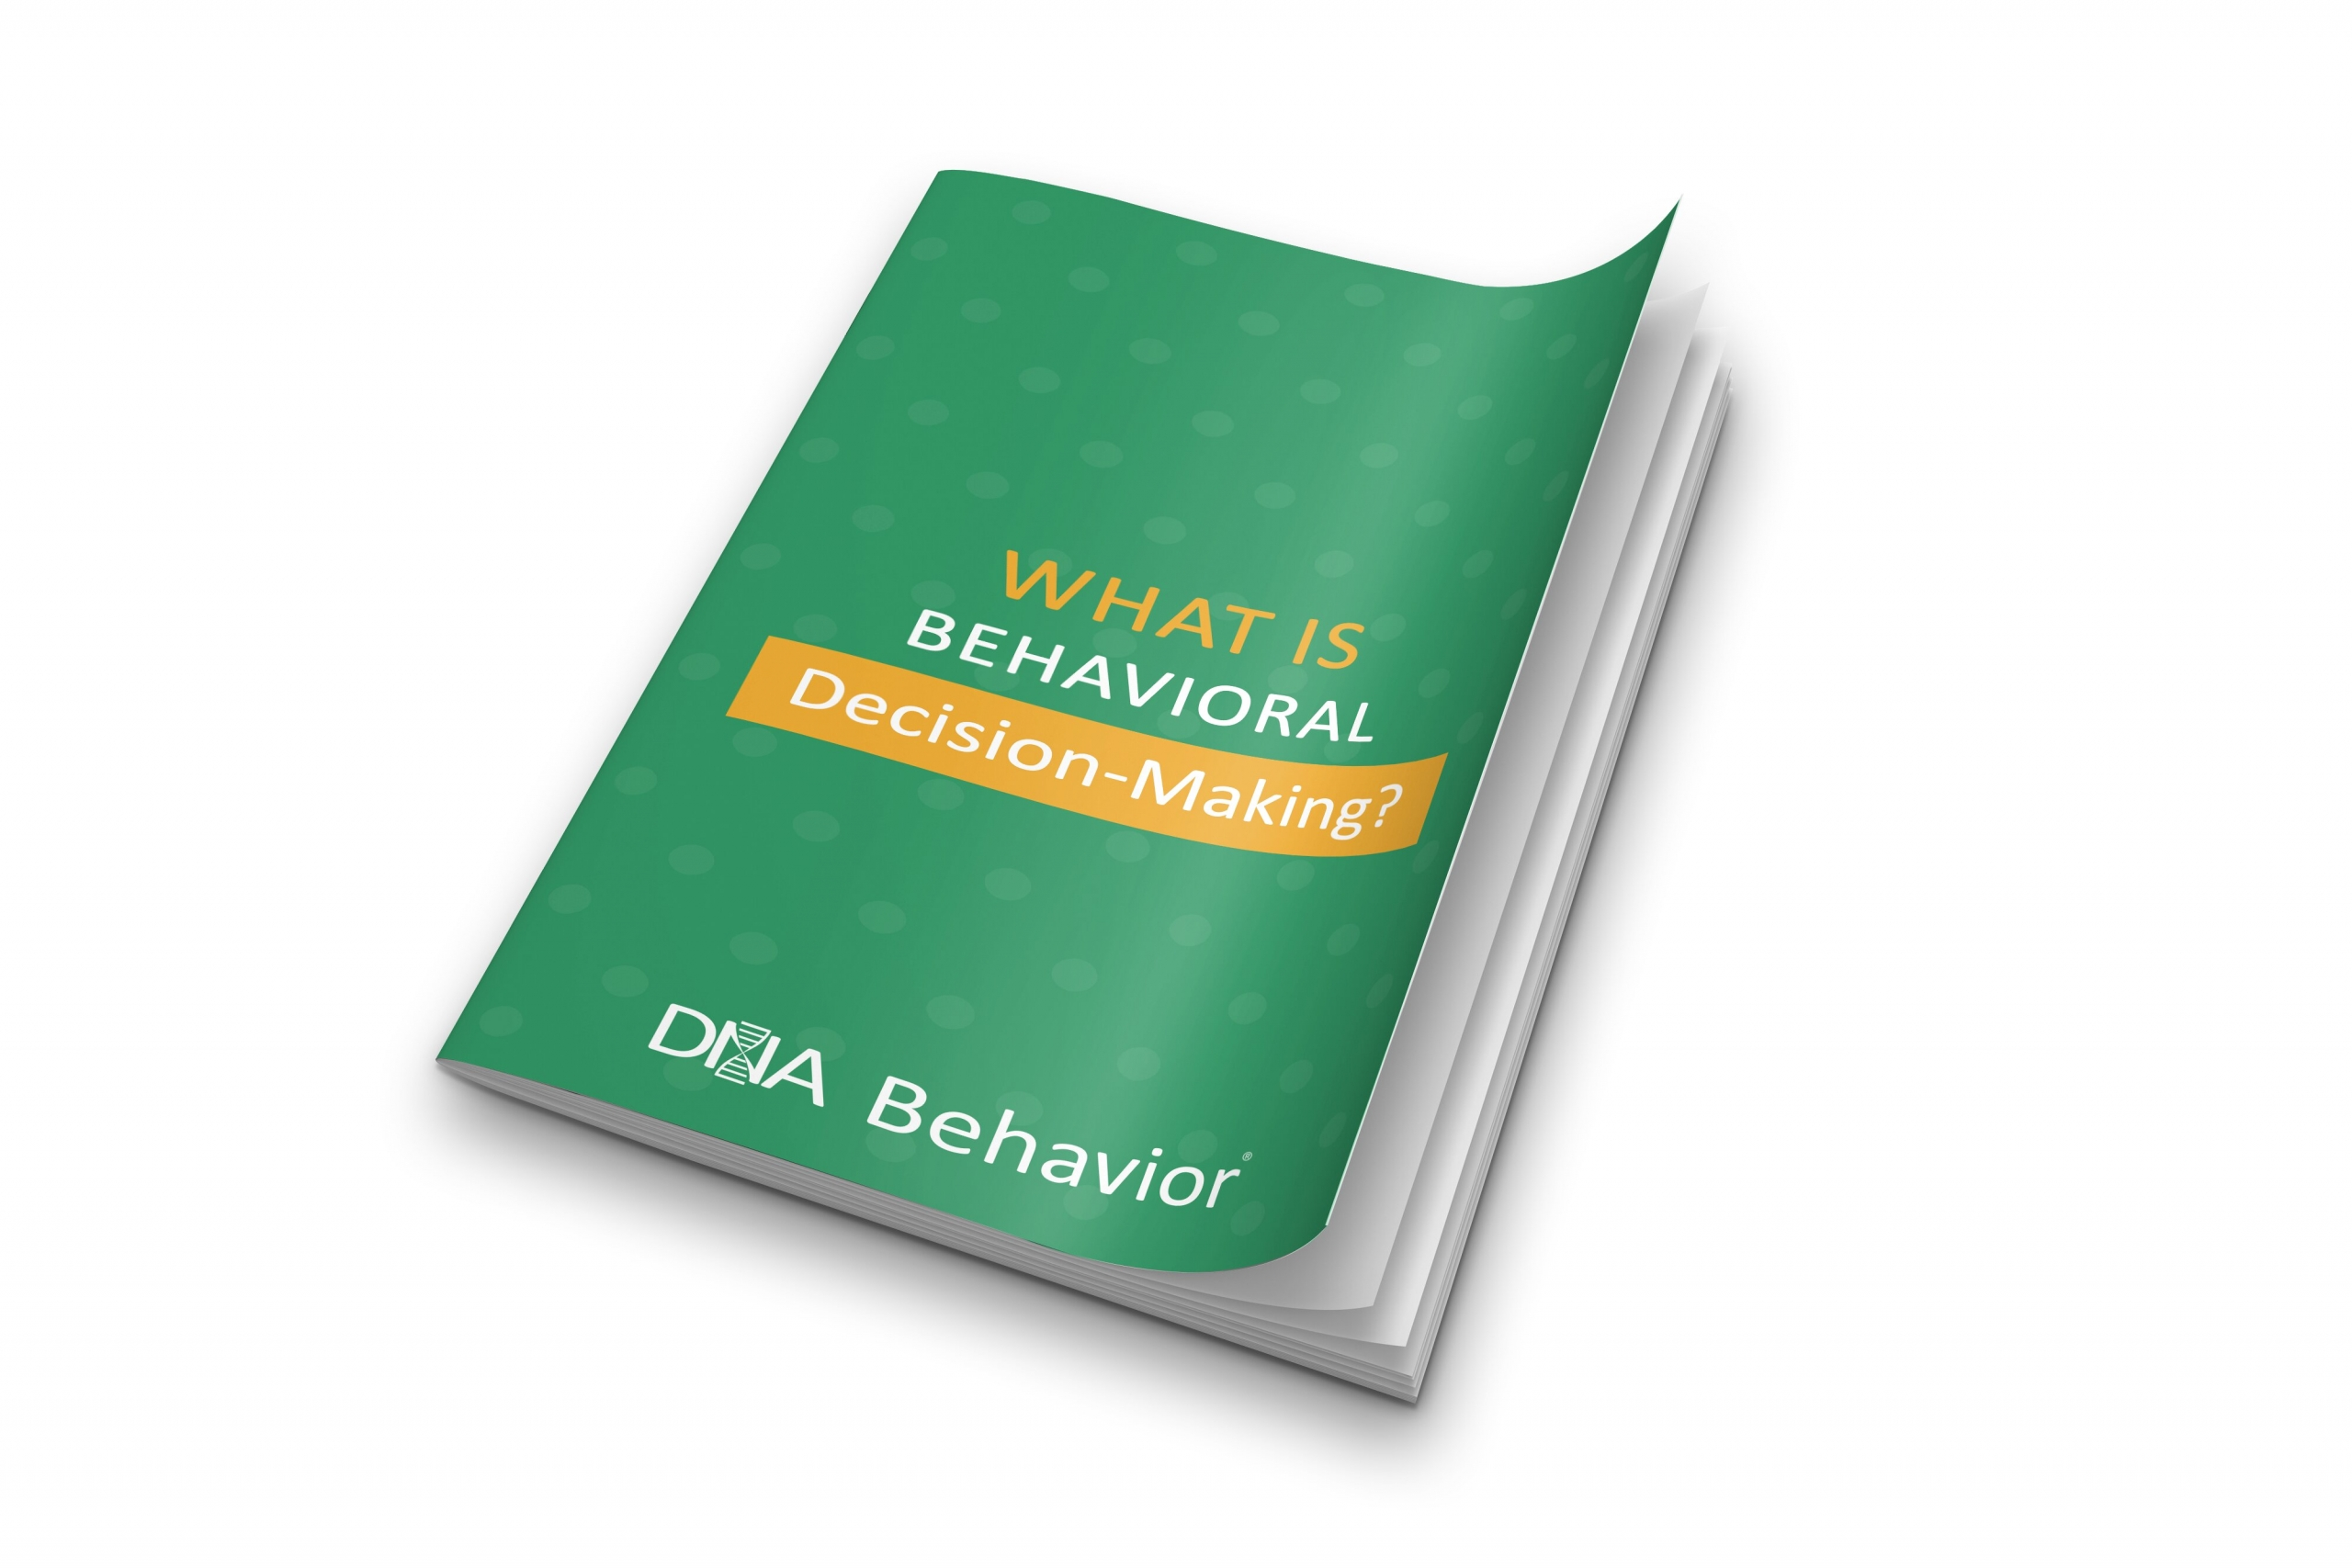 What is Behavioral Decision Making